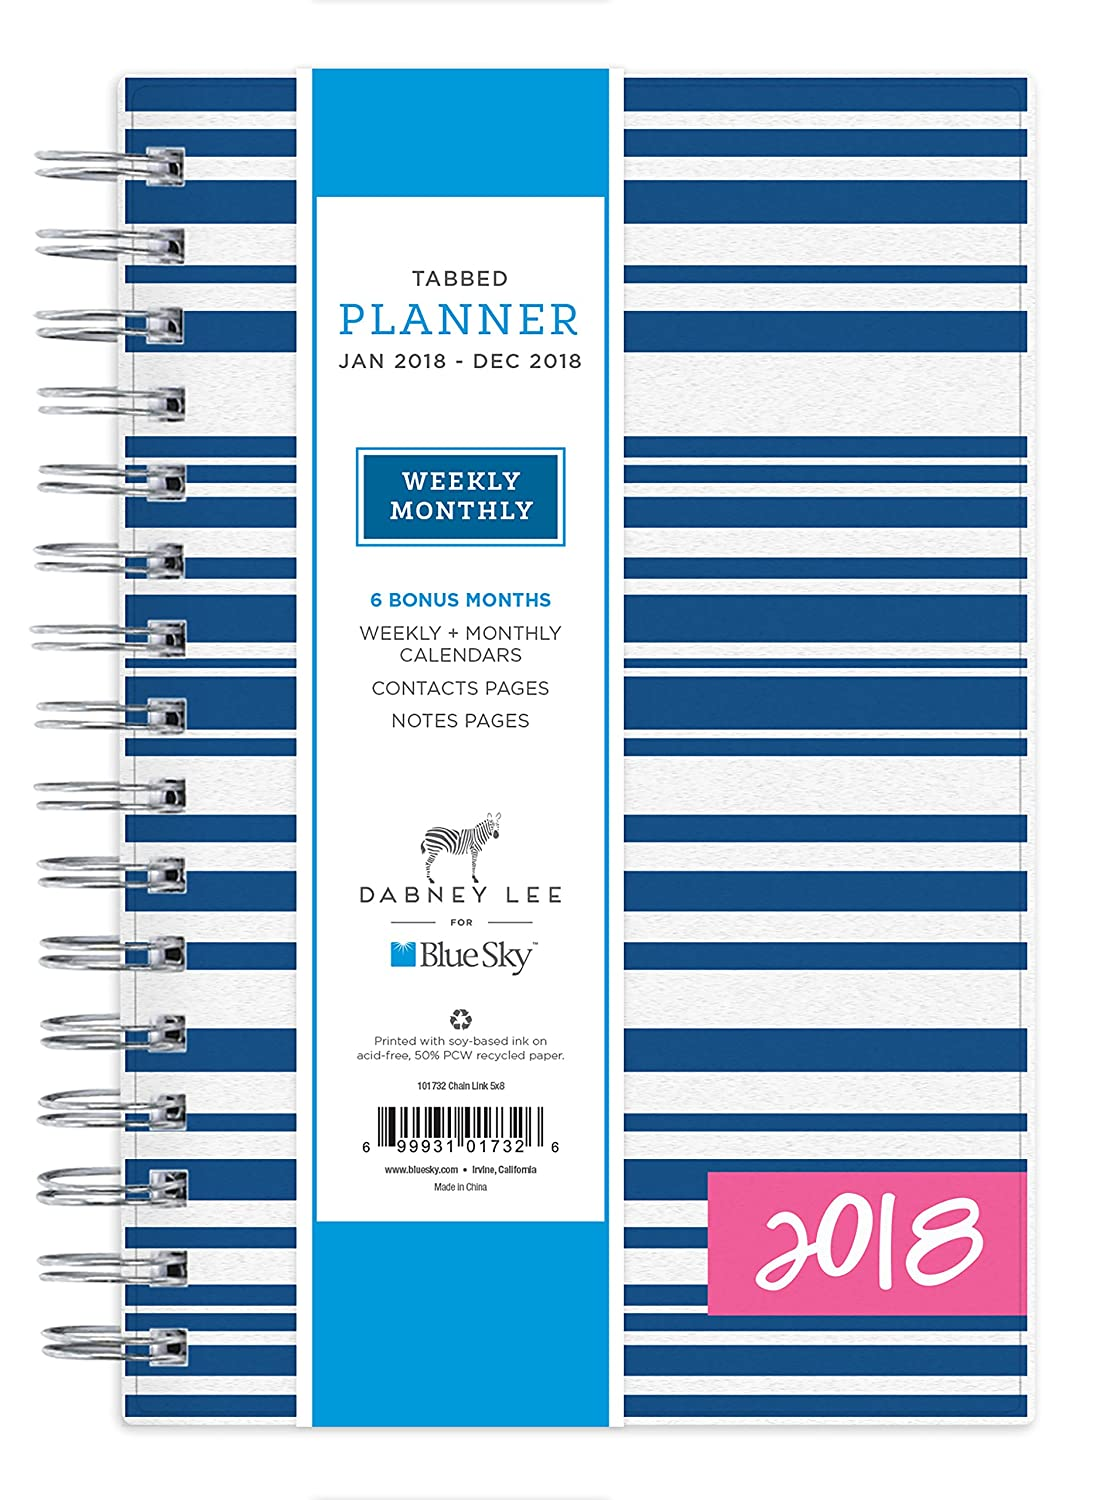 Amazon.com : Dabney Lee for Blue Sky 2018 Weekly & Monthly Planner ...